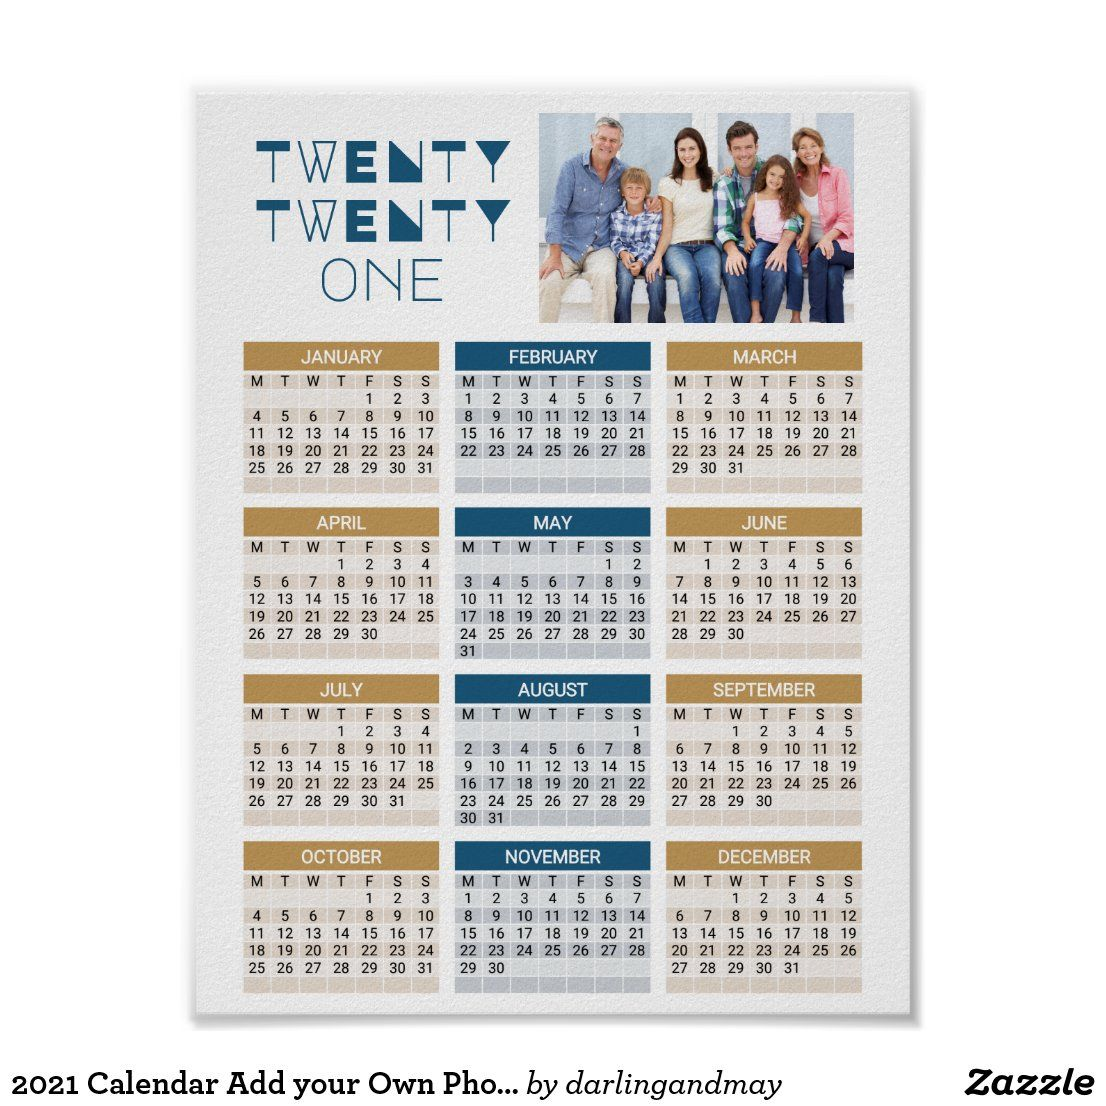 2021 Calendar Add Your Own Photo Blue One Page Poster Zazzle Com 2021 Calendar Calendar Layout Love Photo Collage